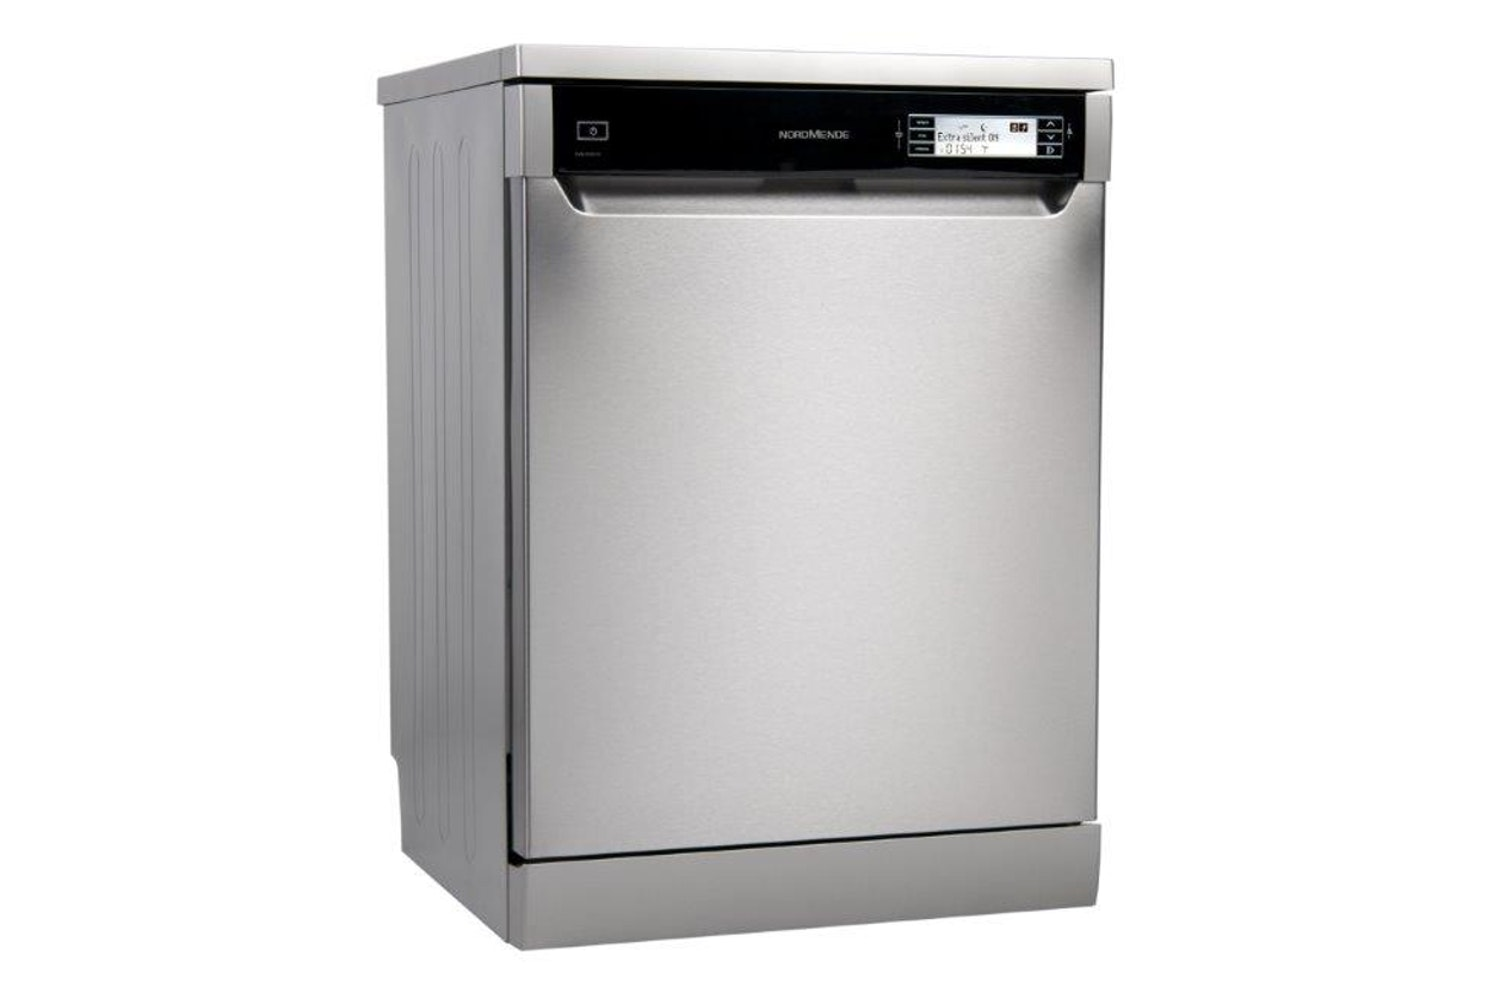 Nordmende Freestanding Dishwasher | 14 Place | DWLD631IX